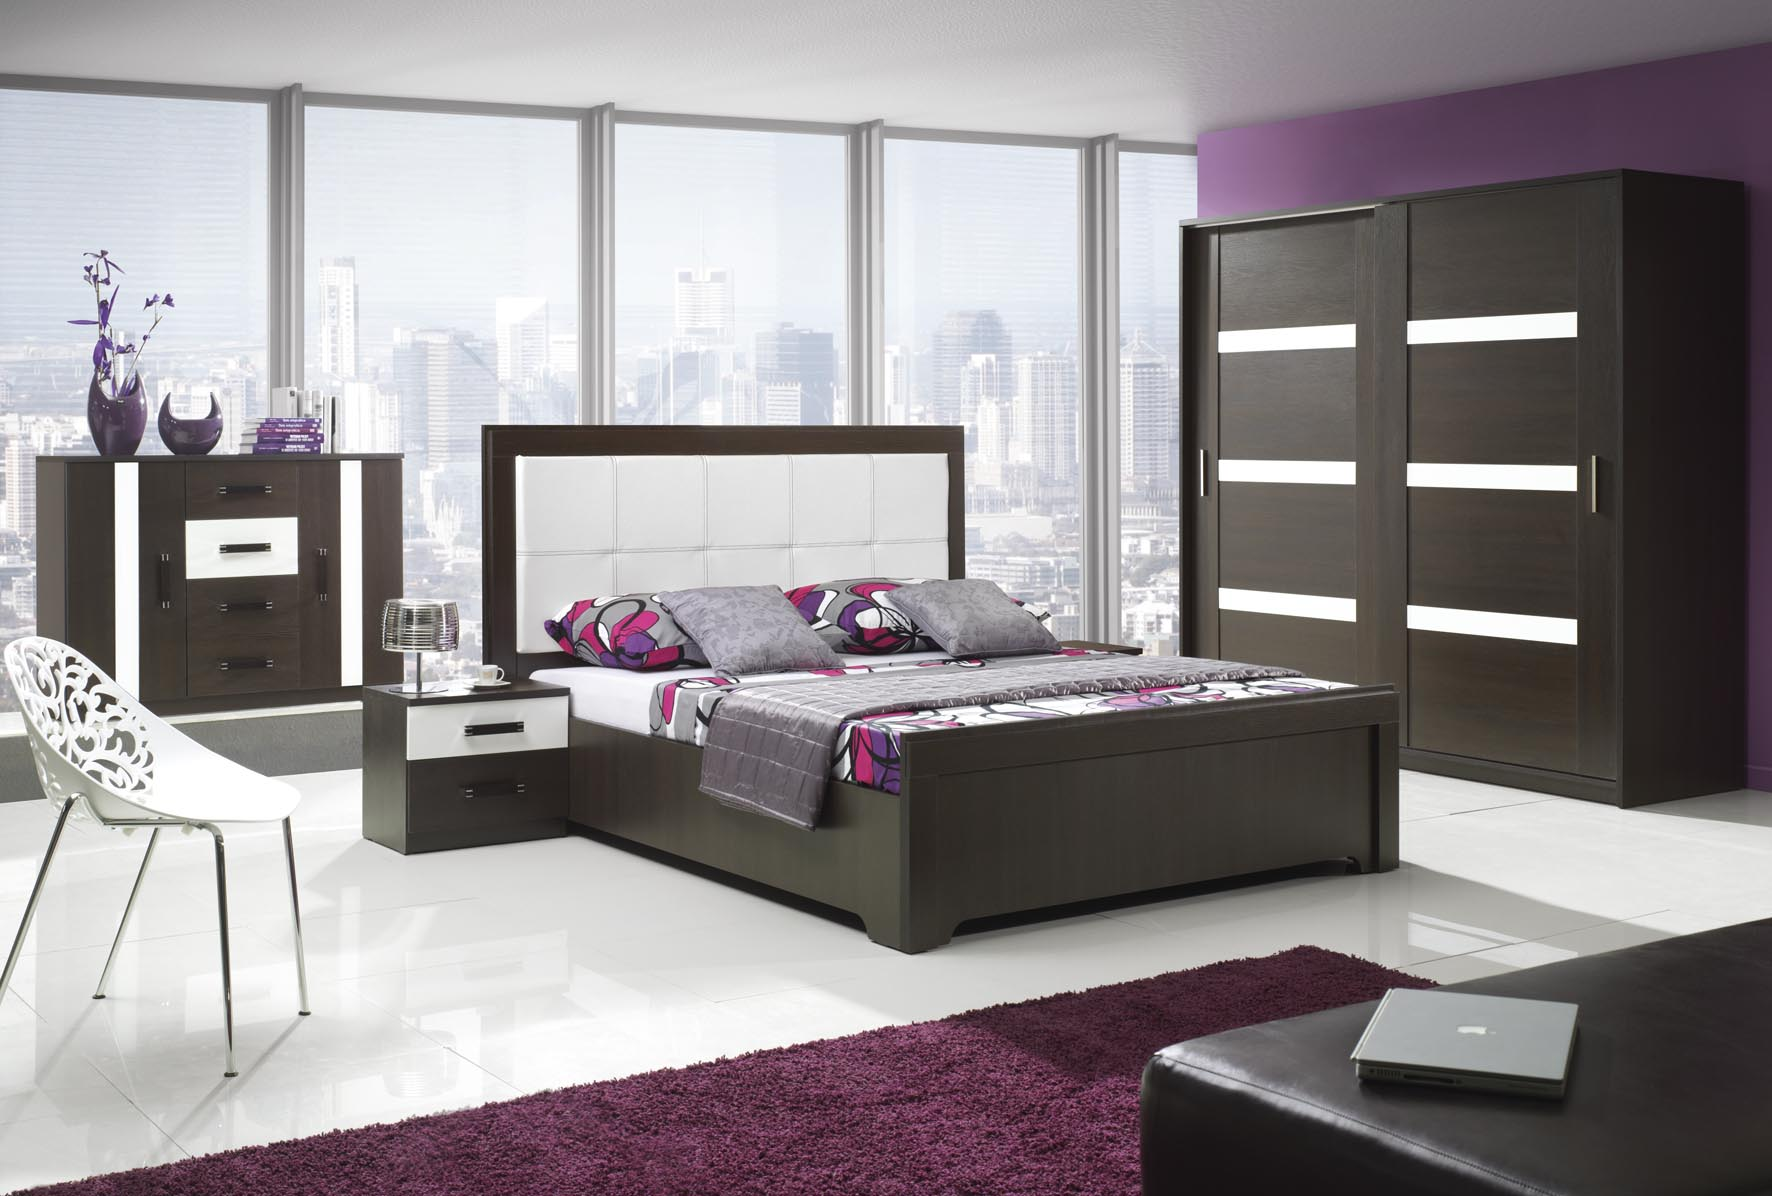 bedroom-furniture-set-